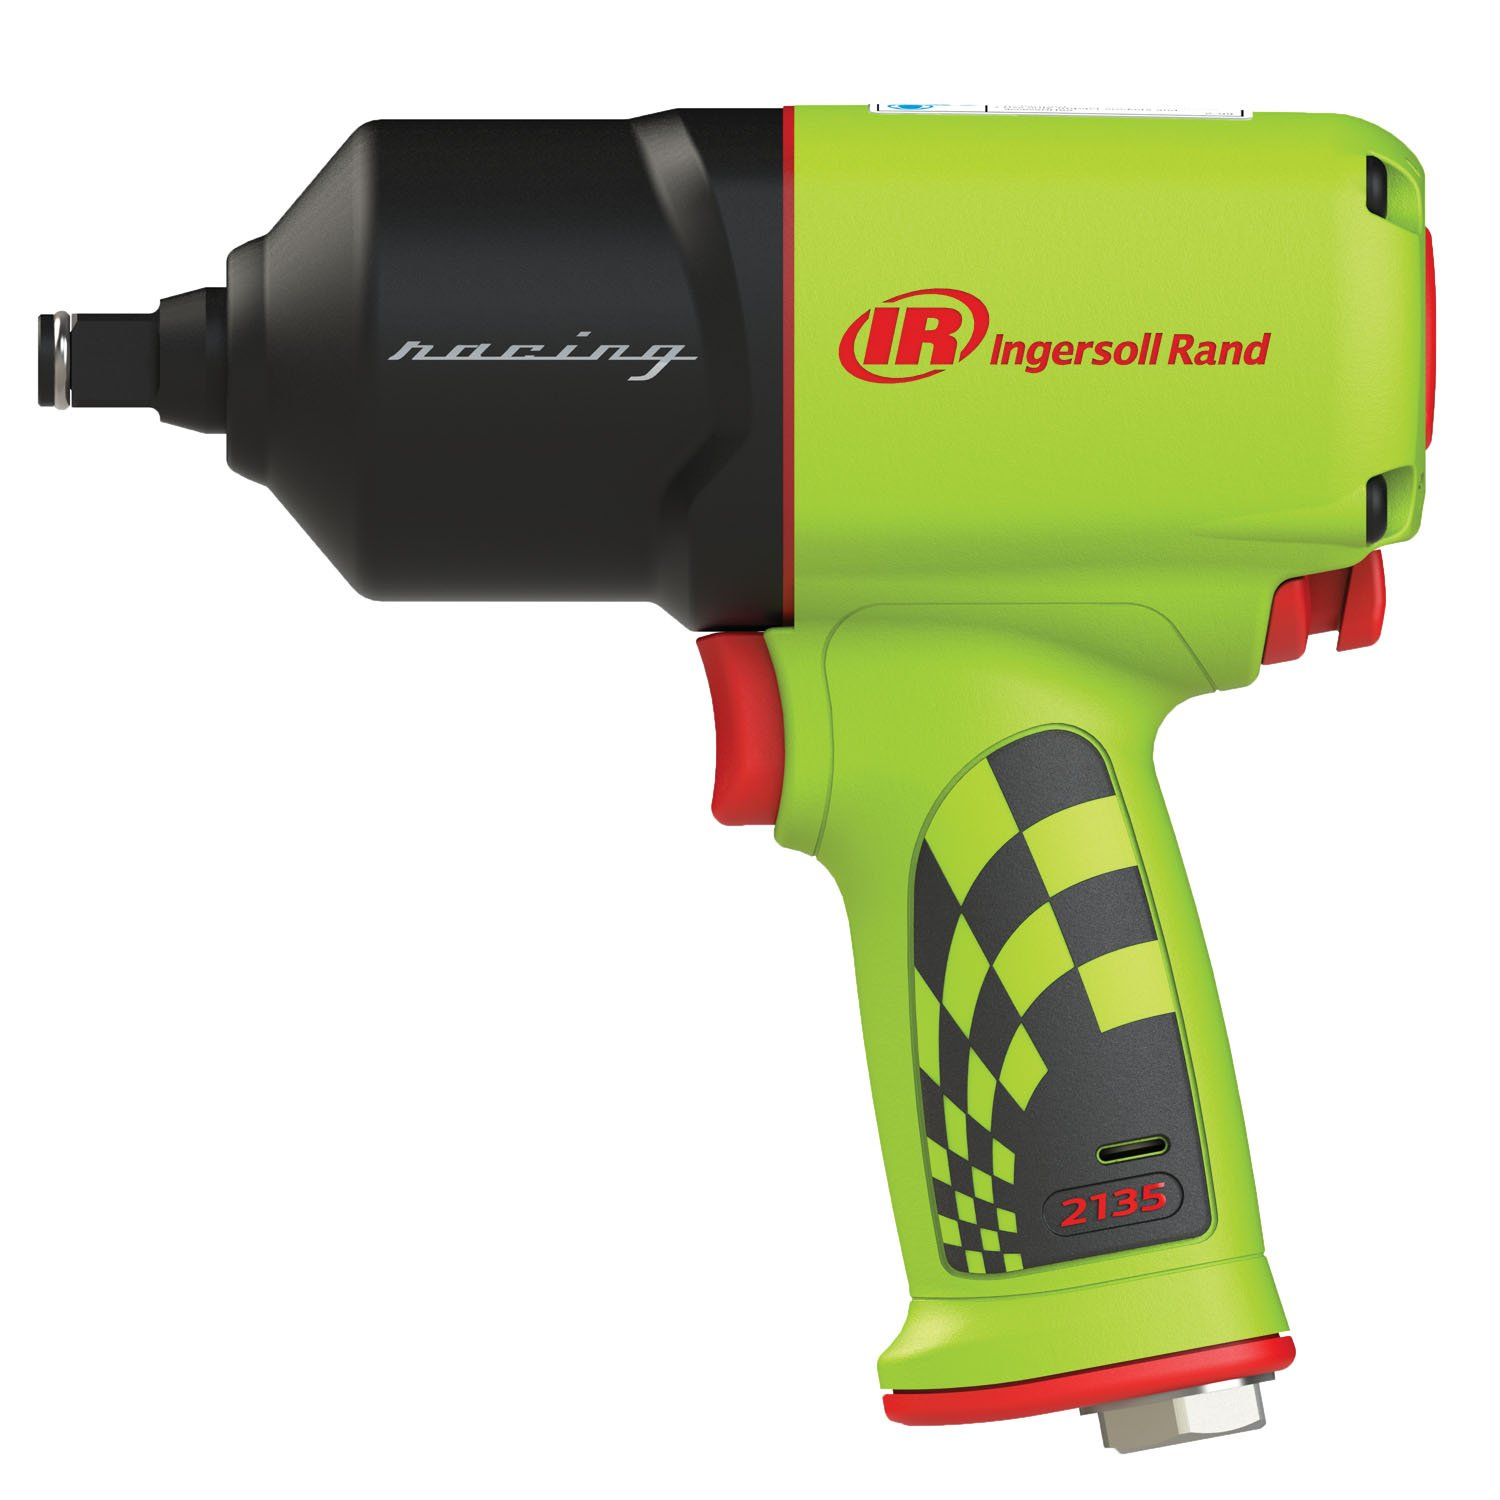 Ingersoll Rand 2135QXPR-G Limited Edition 1/2'' Racing Edition, Quiet Impact Wrench